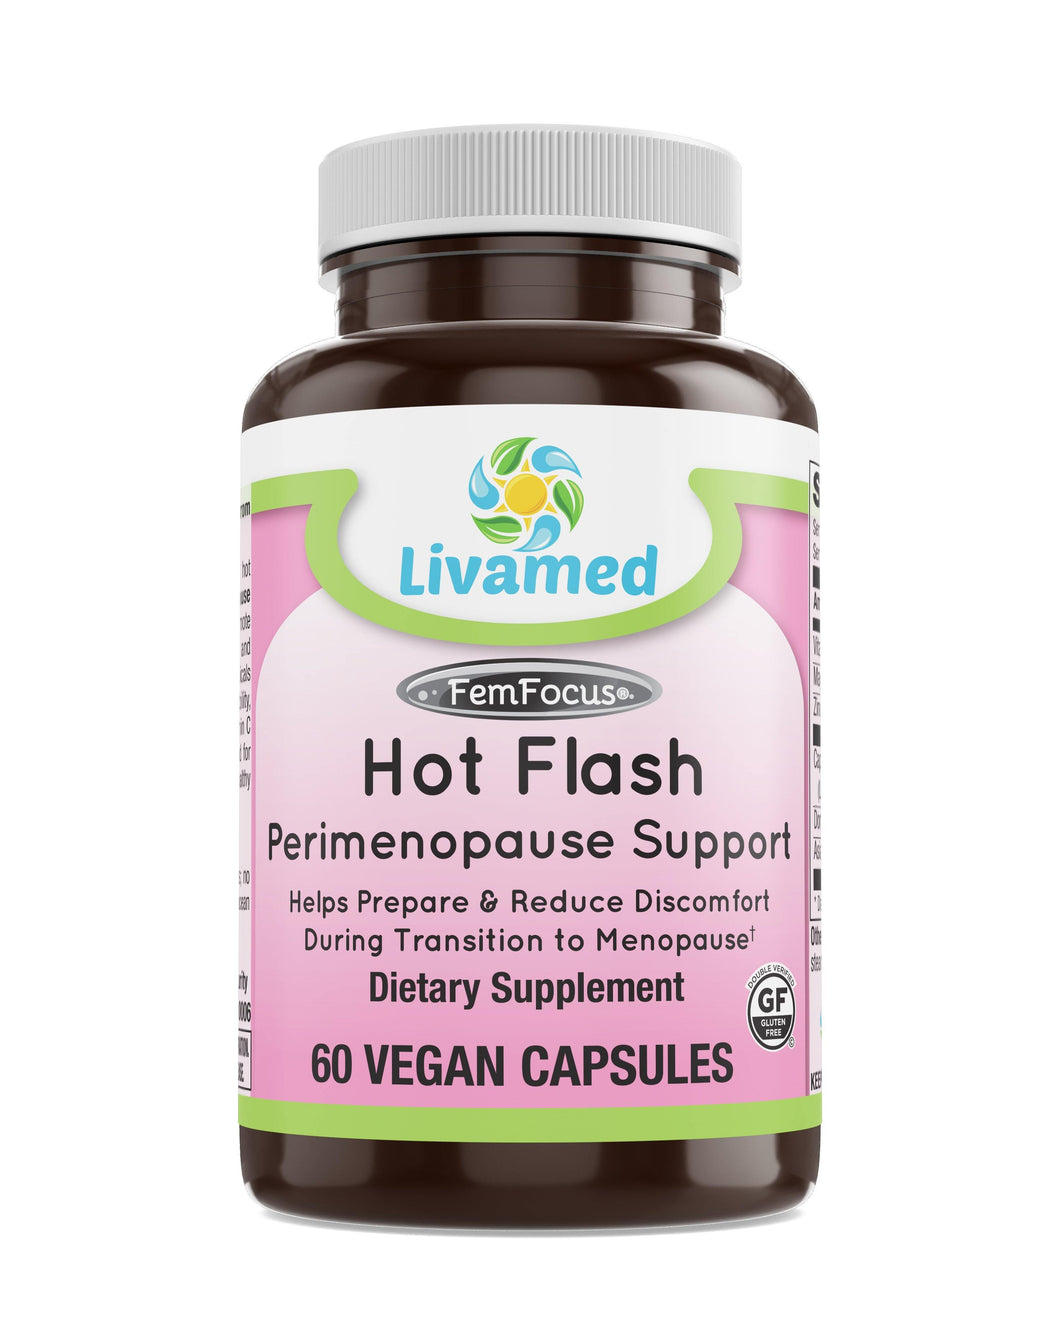 Livamed - Hot Flash Perimenopause Support Veg Caps 60 Count - Livamed Vitamins